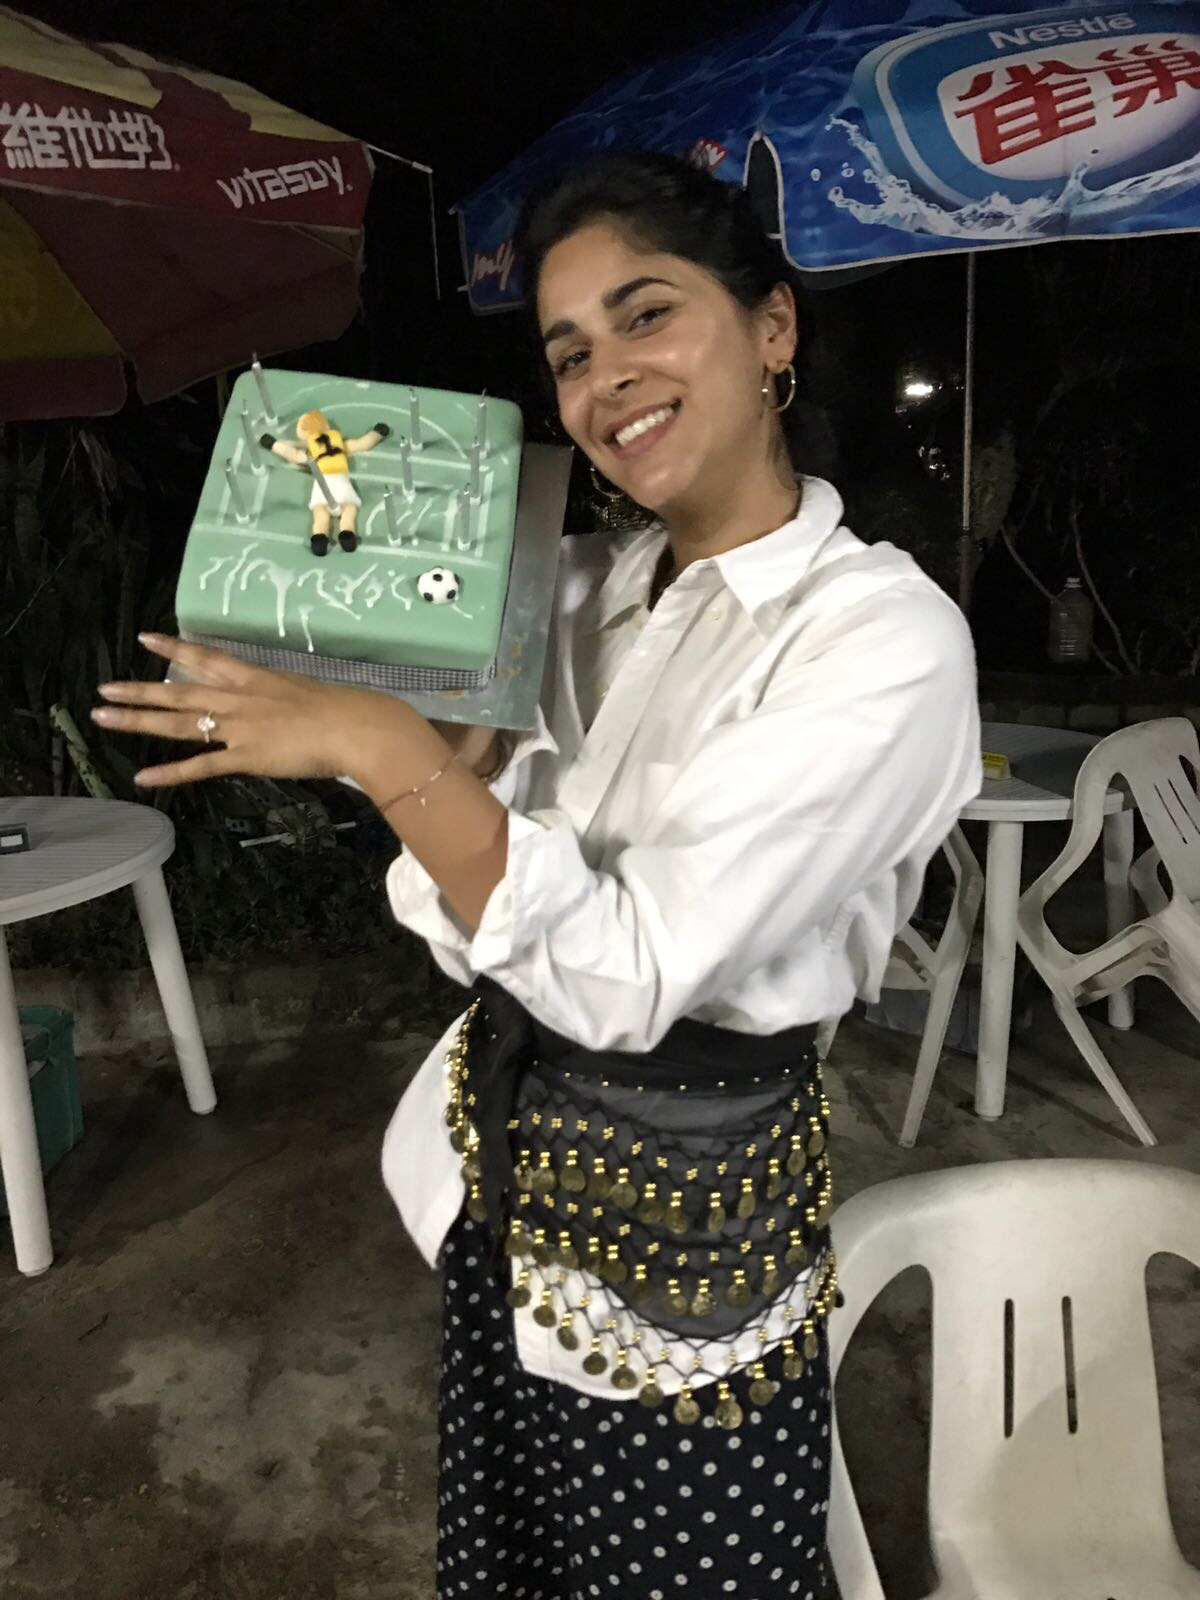 Here i am with my cake,my new ring and dripping icing which said 'anahita'